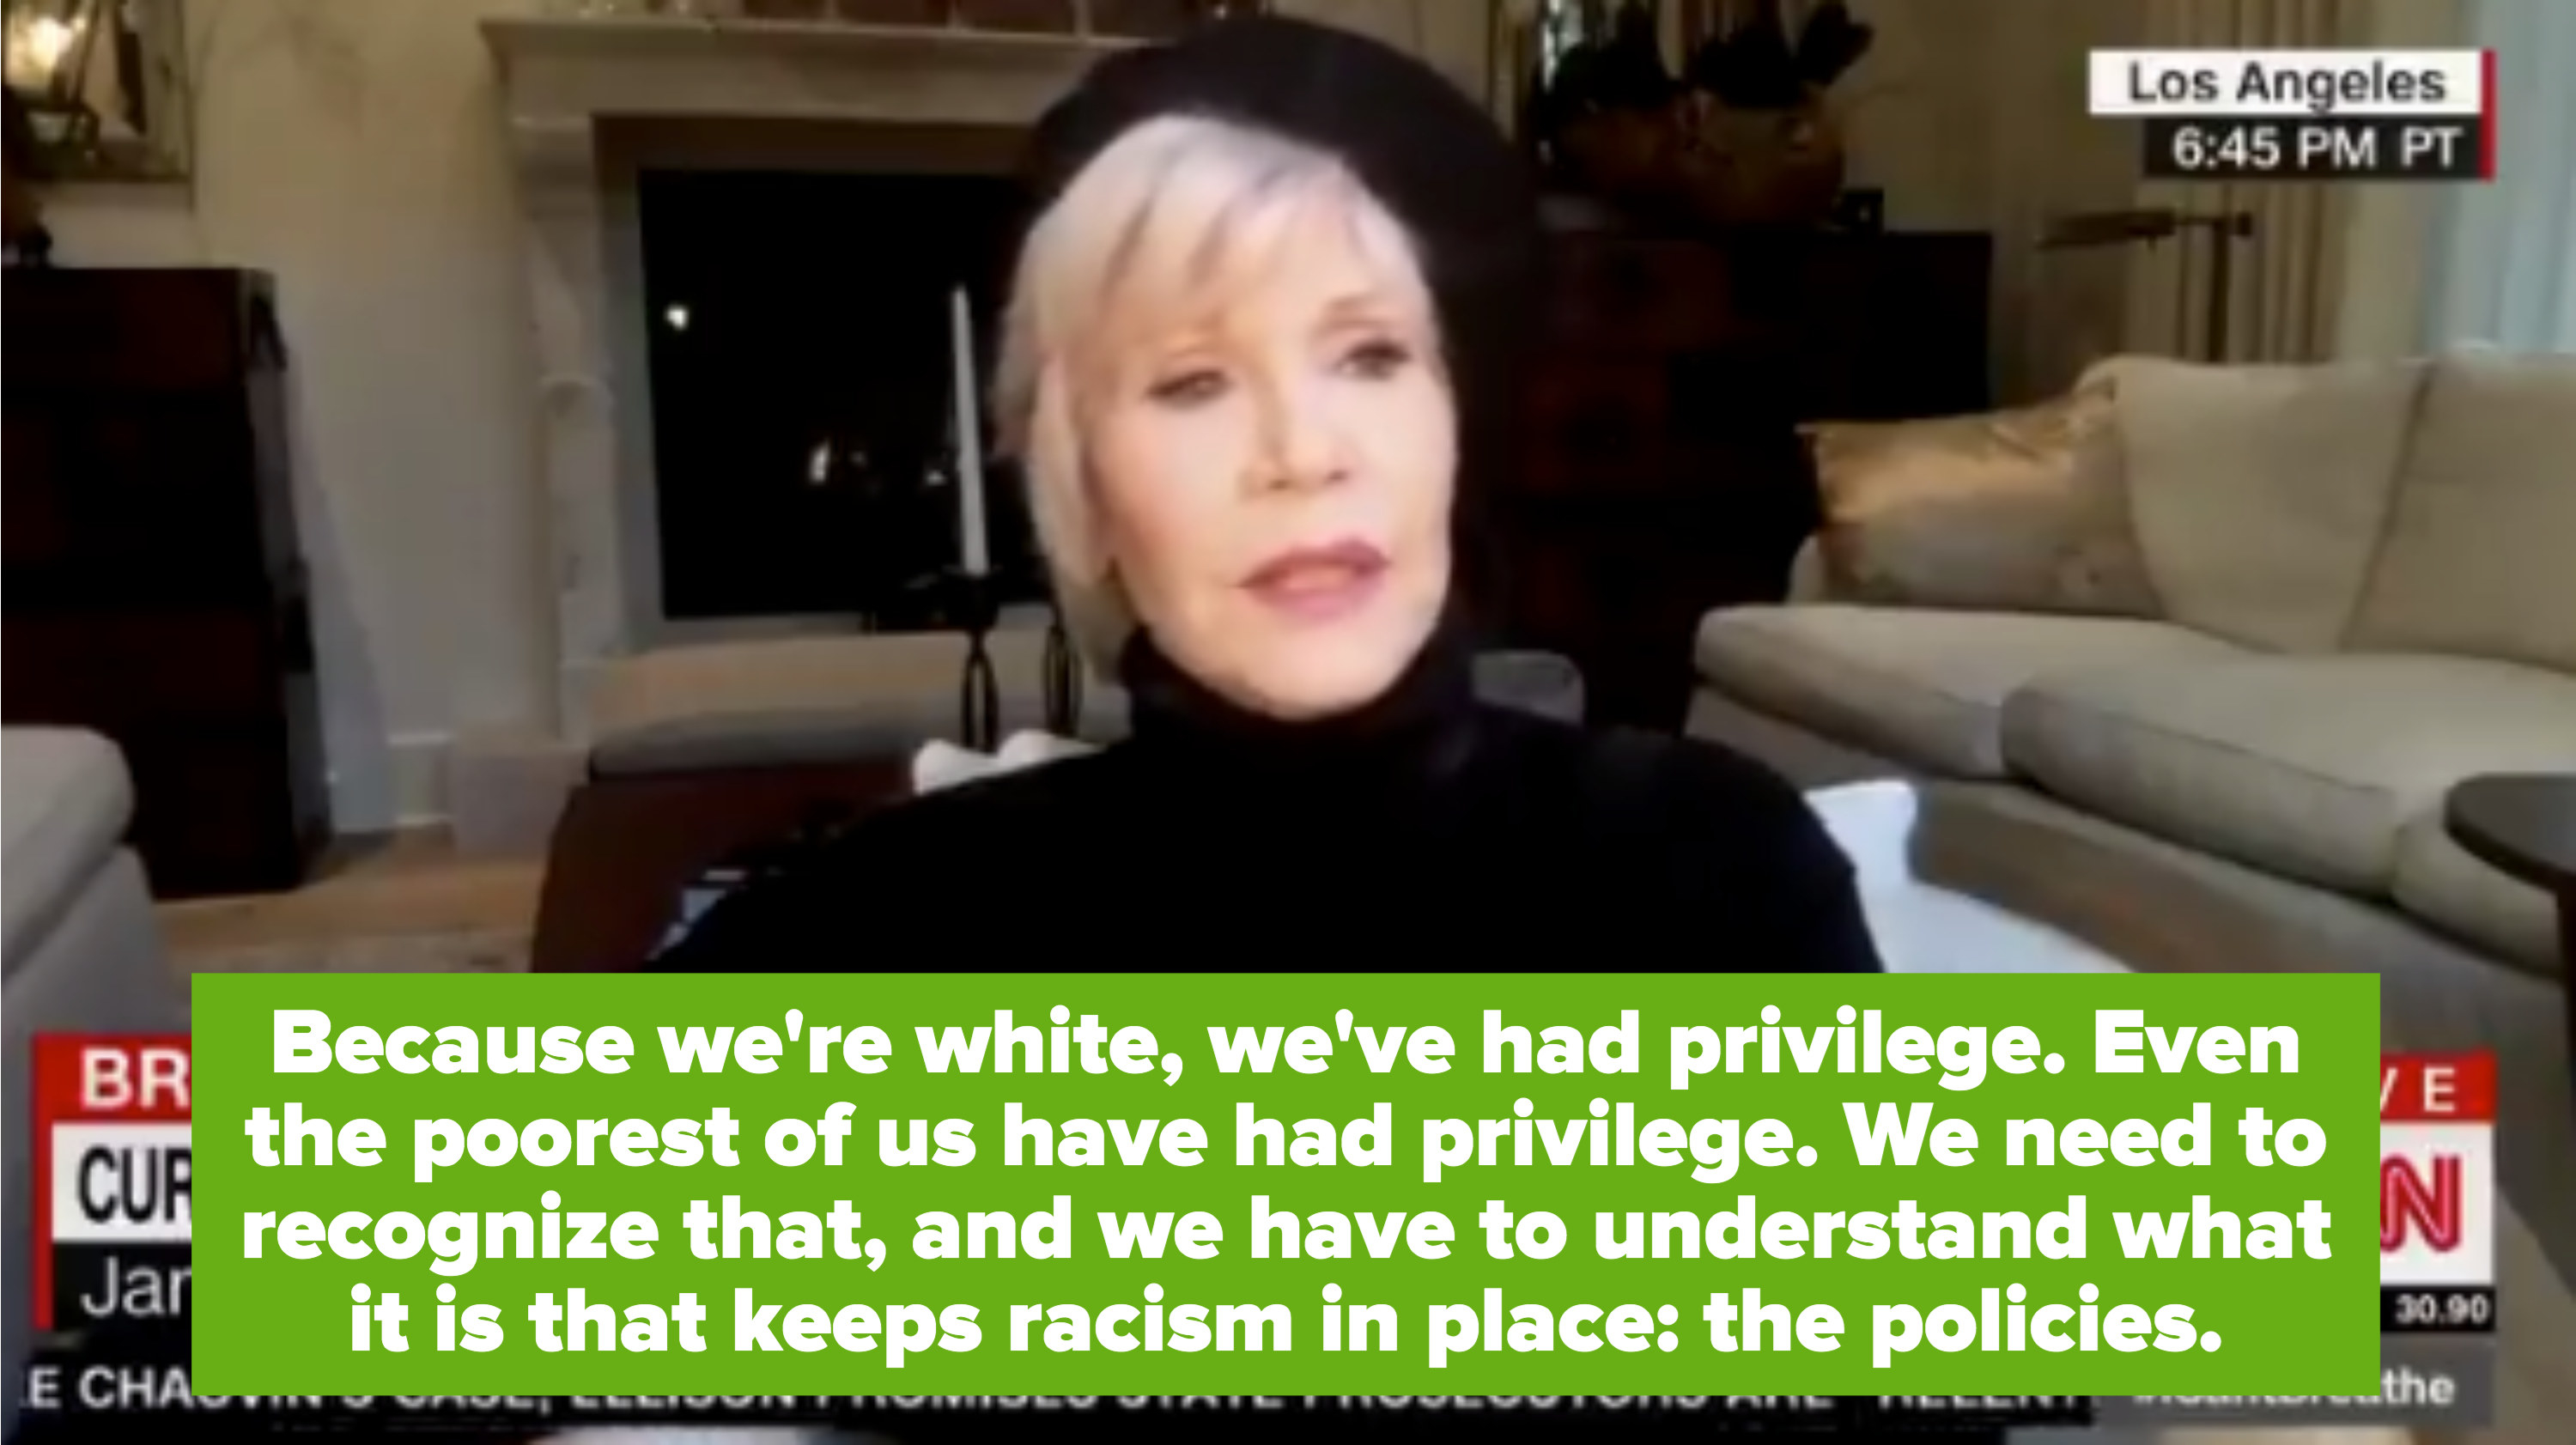 Jane Fonda being interviewed in her home via Facetime for CNN, discussing how policies need to change in order to dismantle racism